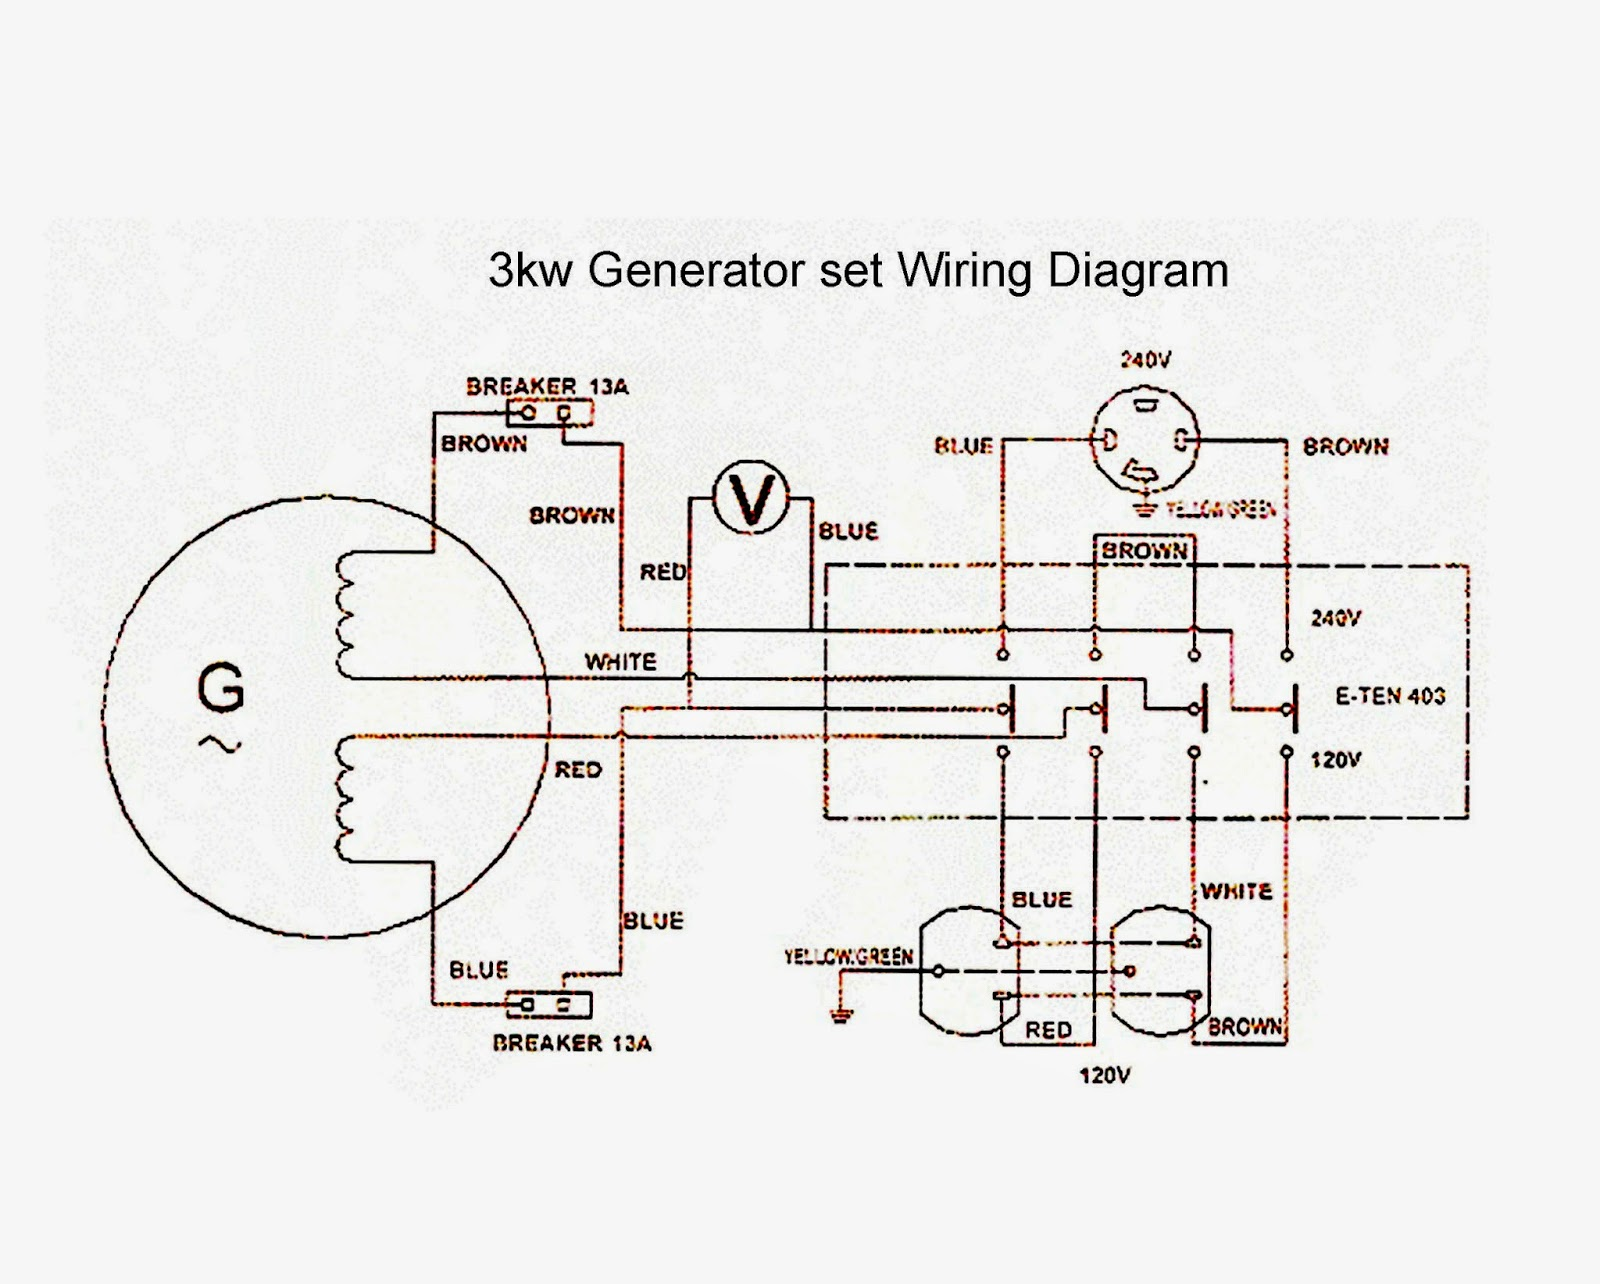 3000w+gensetswiringdiagram+1 28 [ wiring diagram of generator ] starter generator wiring electrical wire diagram software freeware at alyssarenee.co